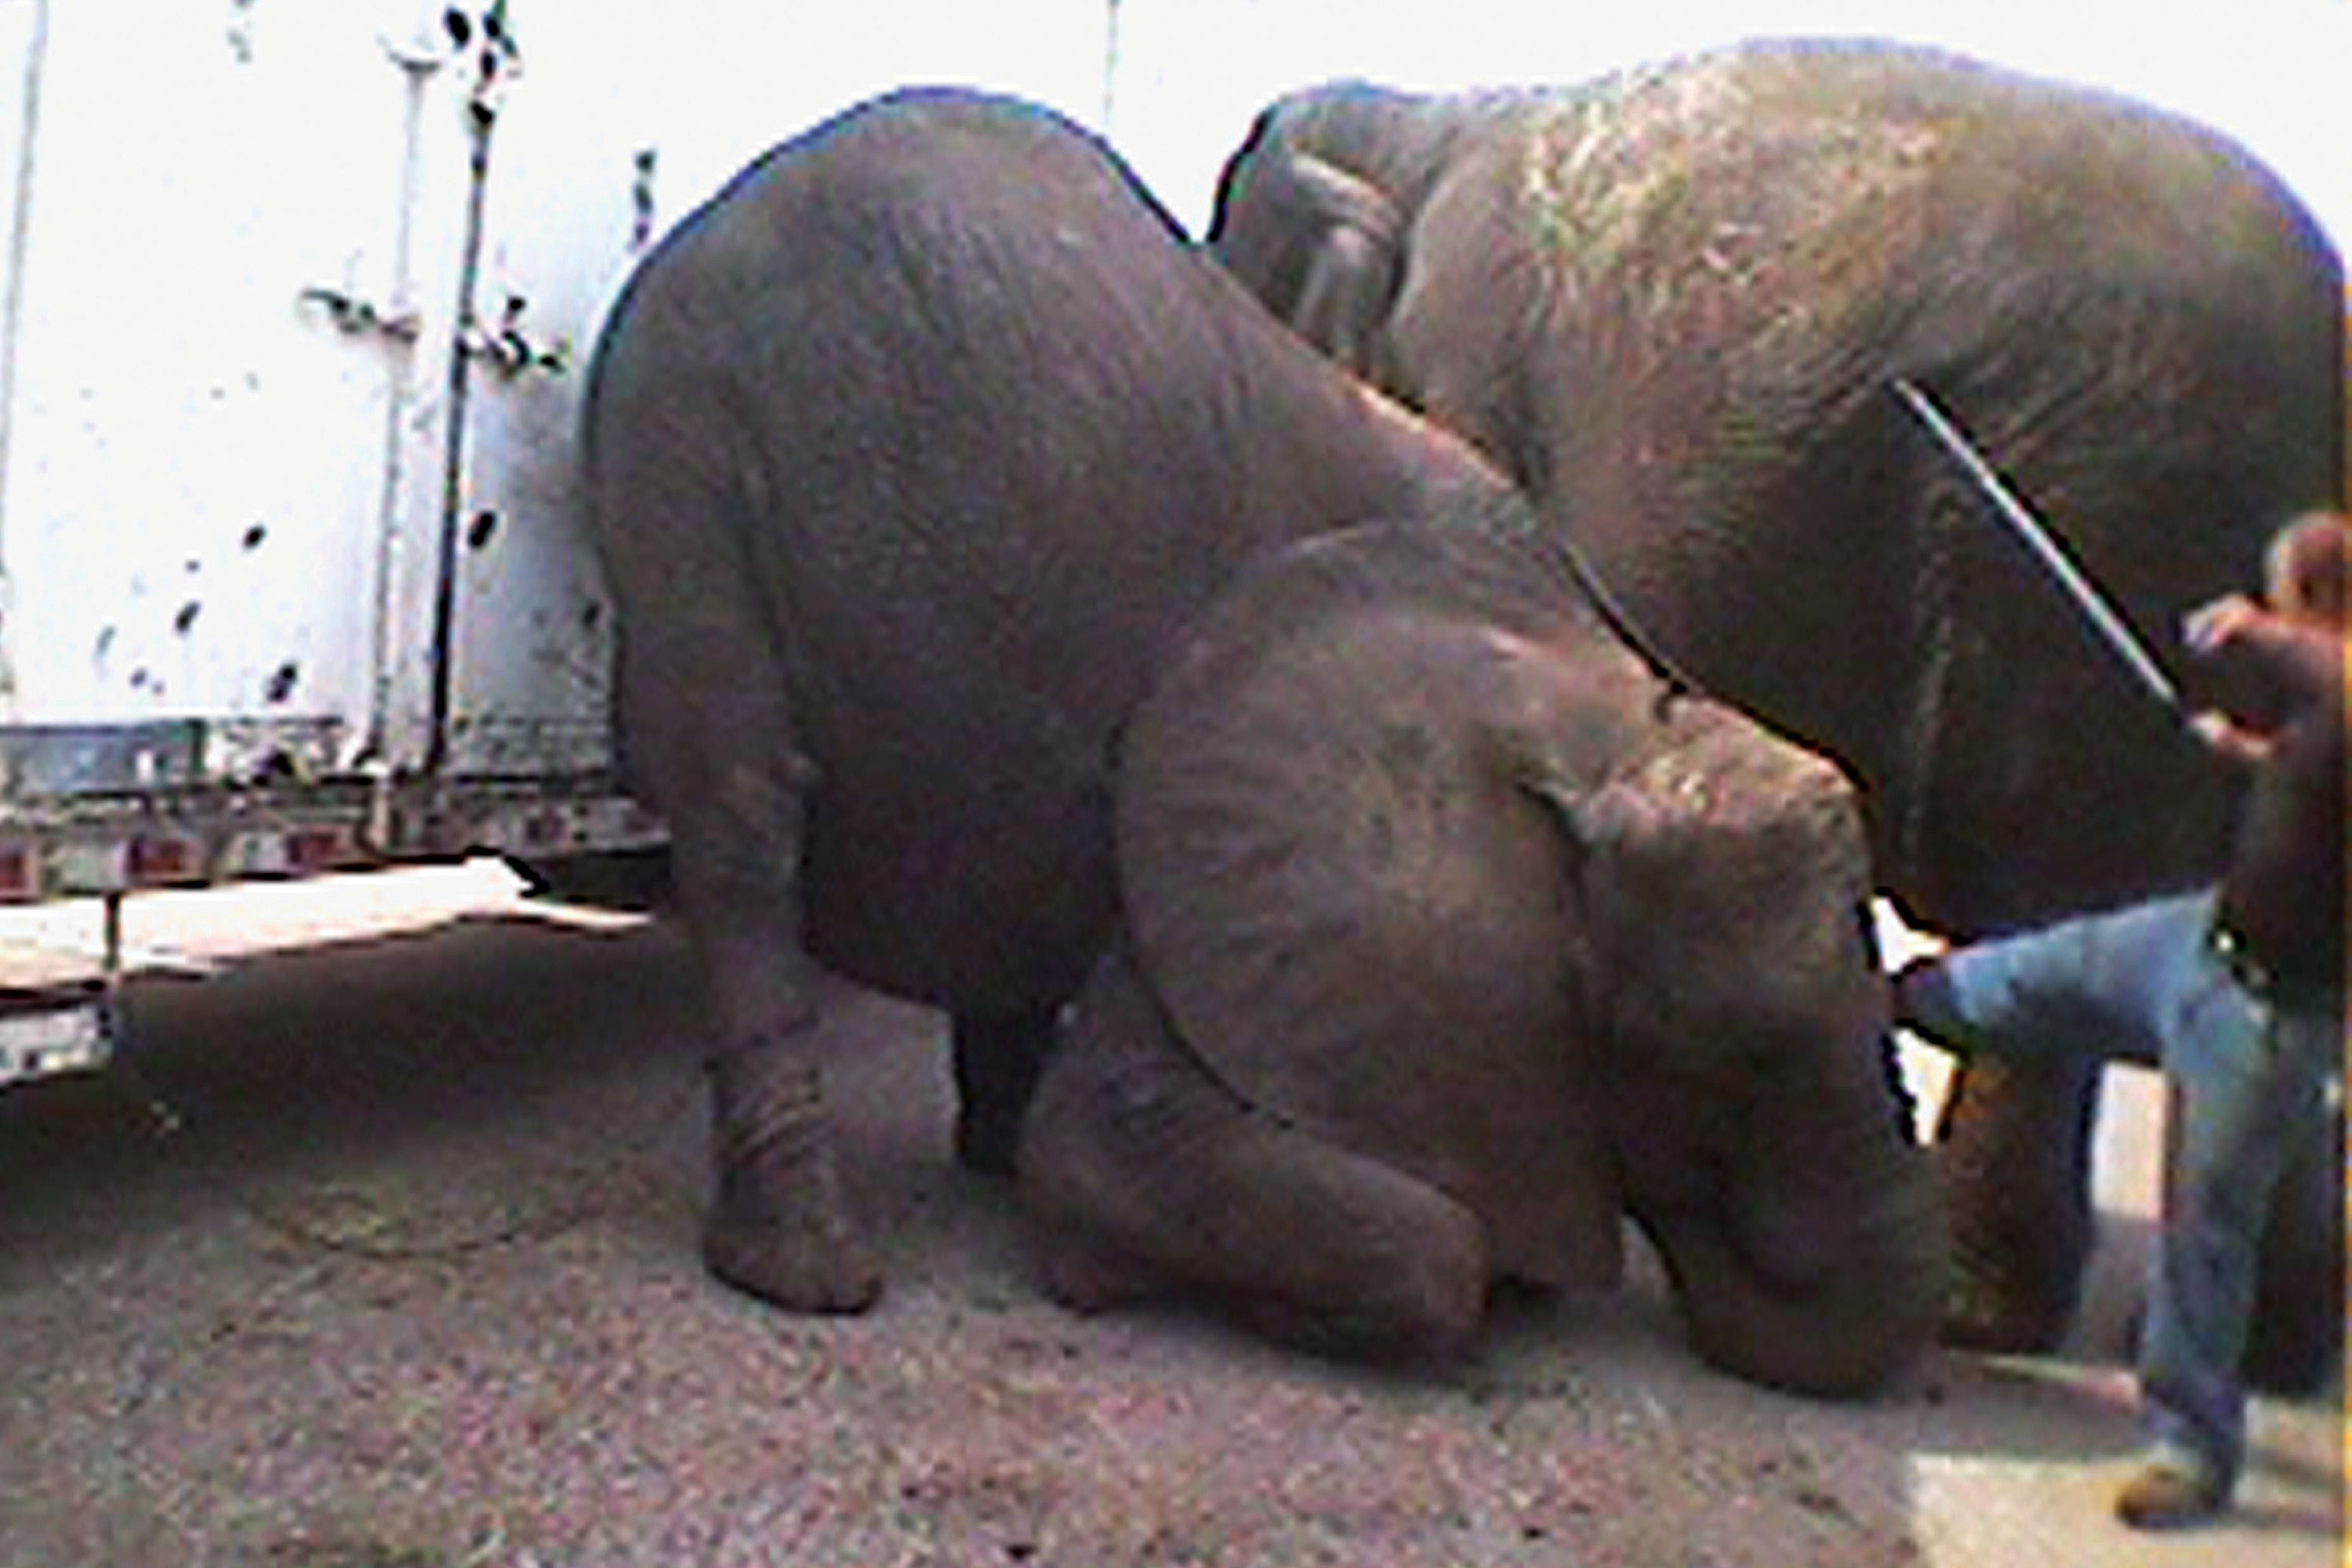 Bailey Brothers Circus elephant being kicked